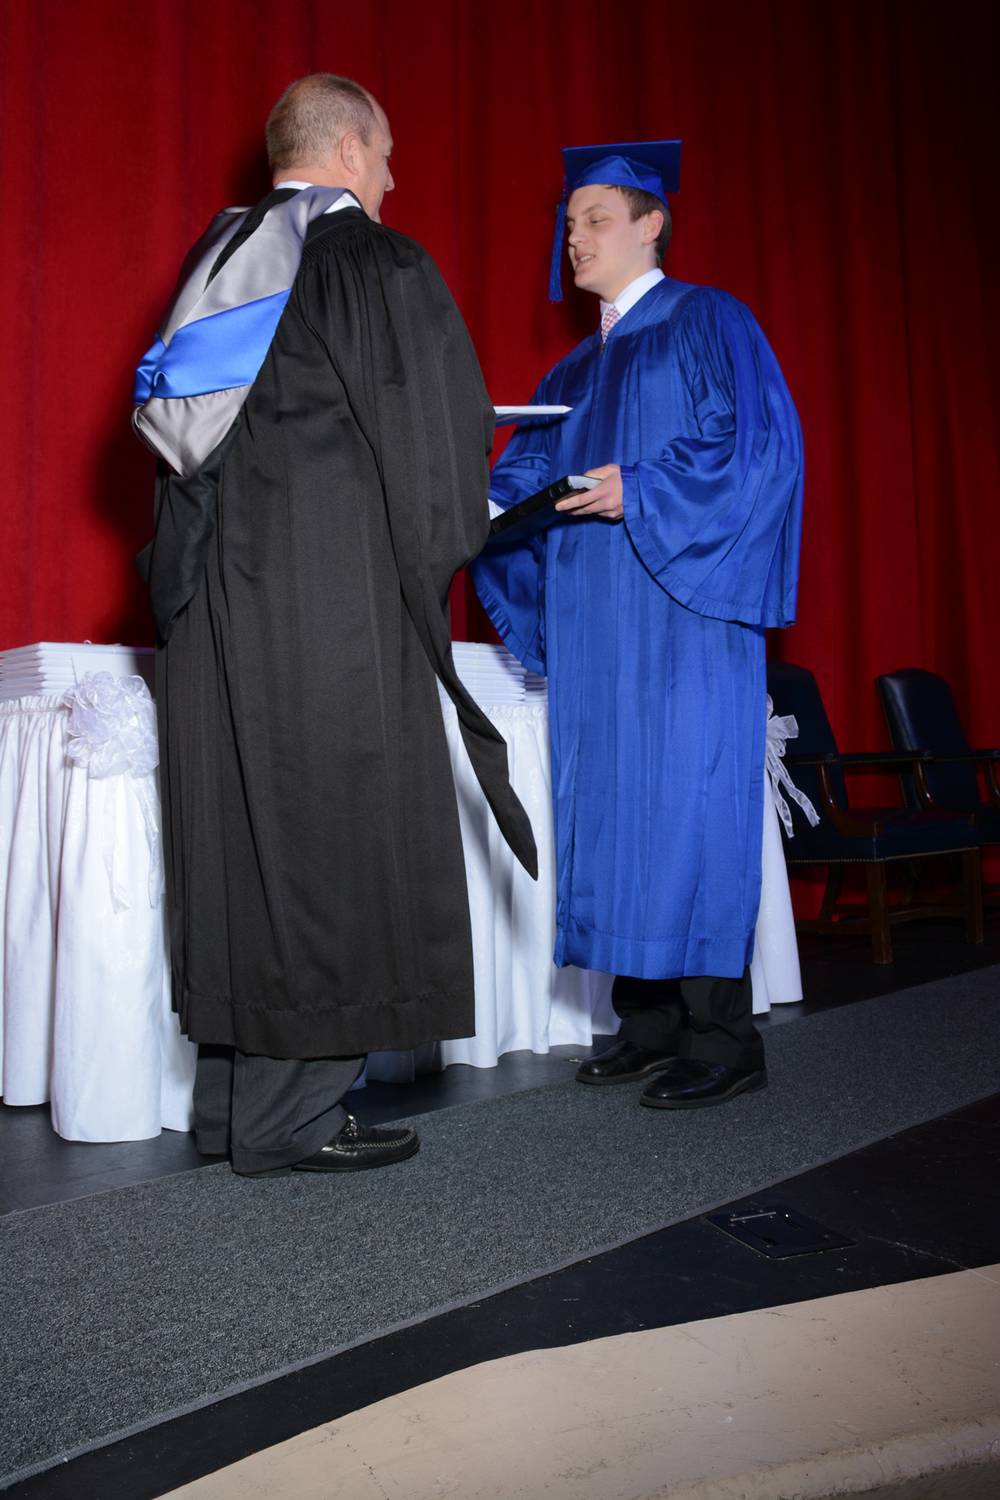 May16 GraduationPhotos19.jpg